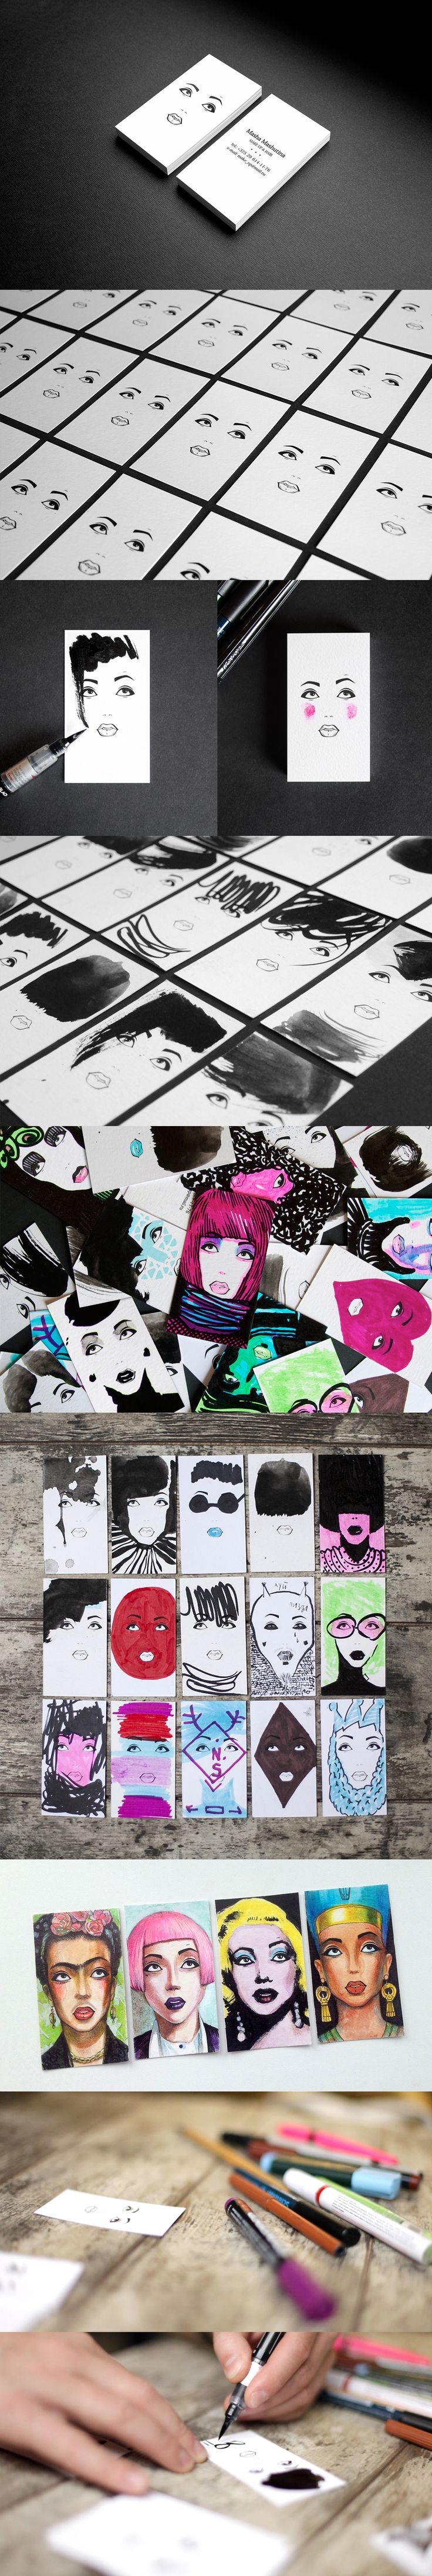 Cool dynamic business card by Lesha Limonov. http://revision.ru/work/94414/